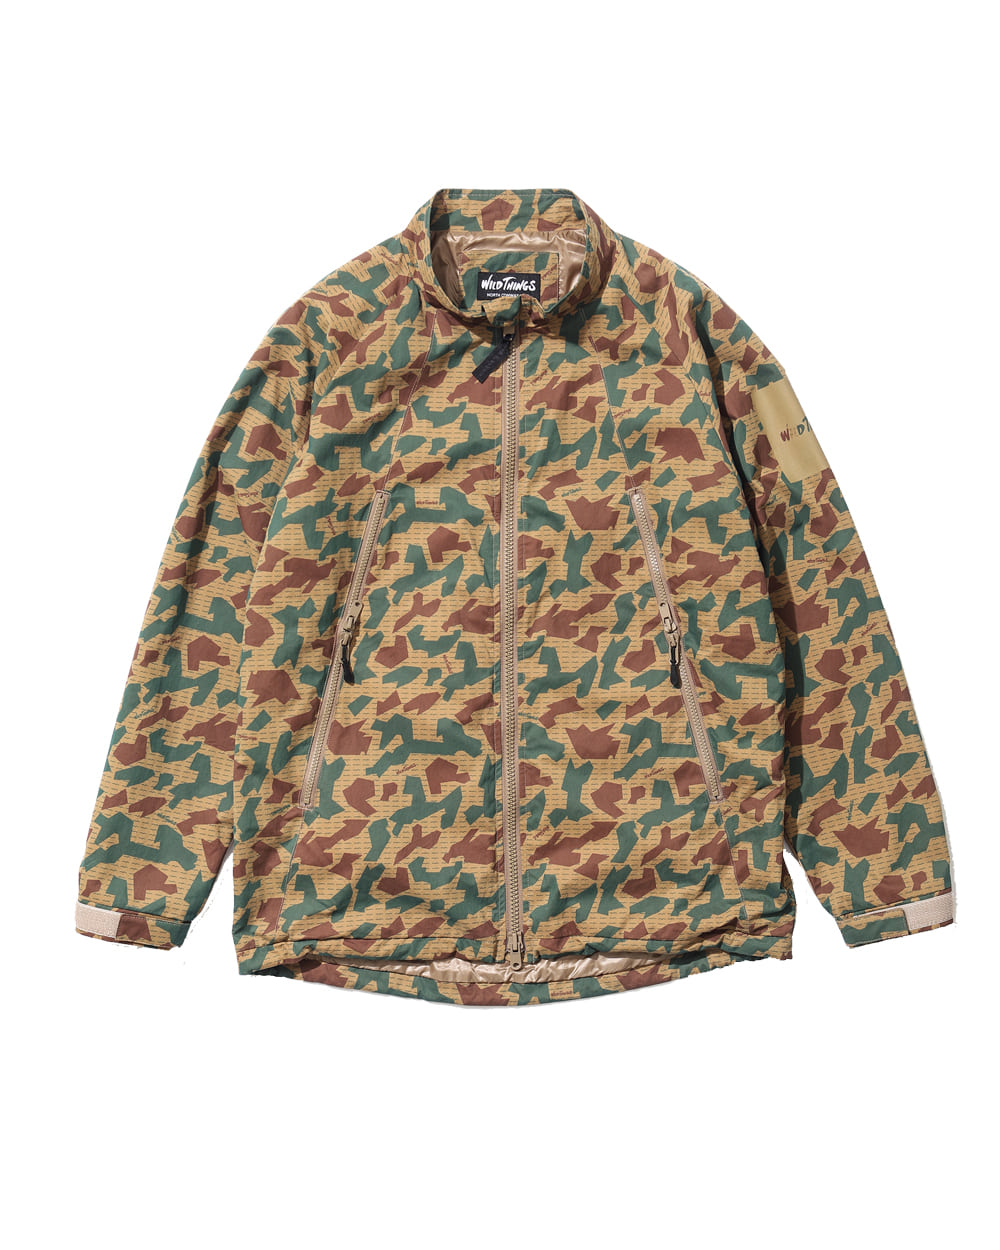 와일드띵스 LIGHT HAPPY JACKET (Camo)